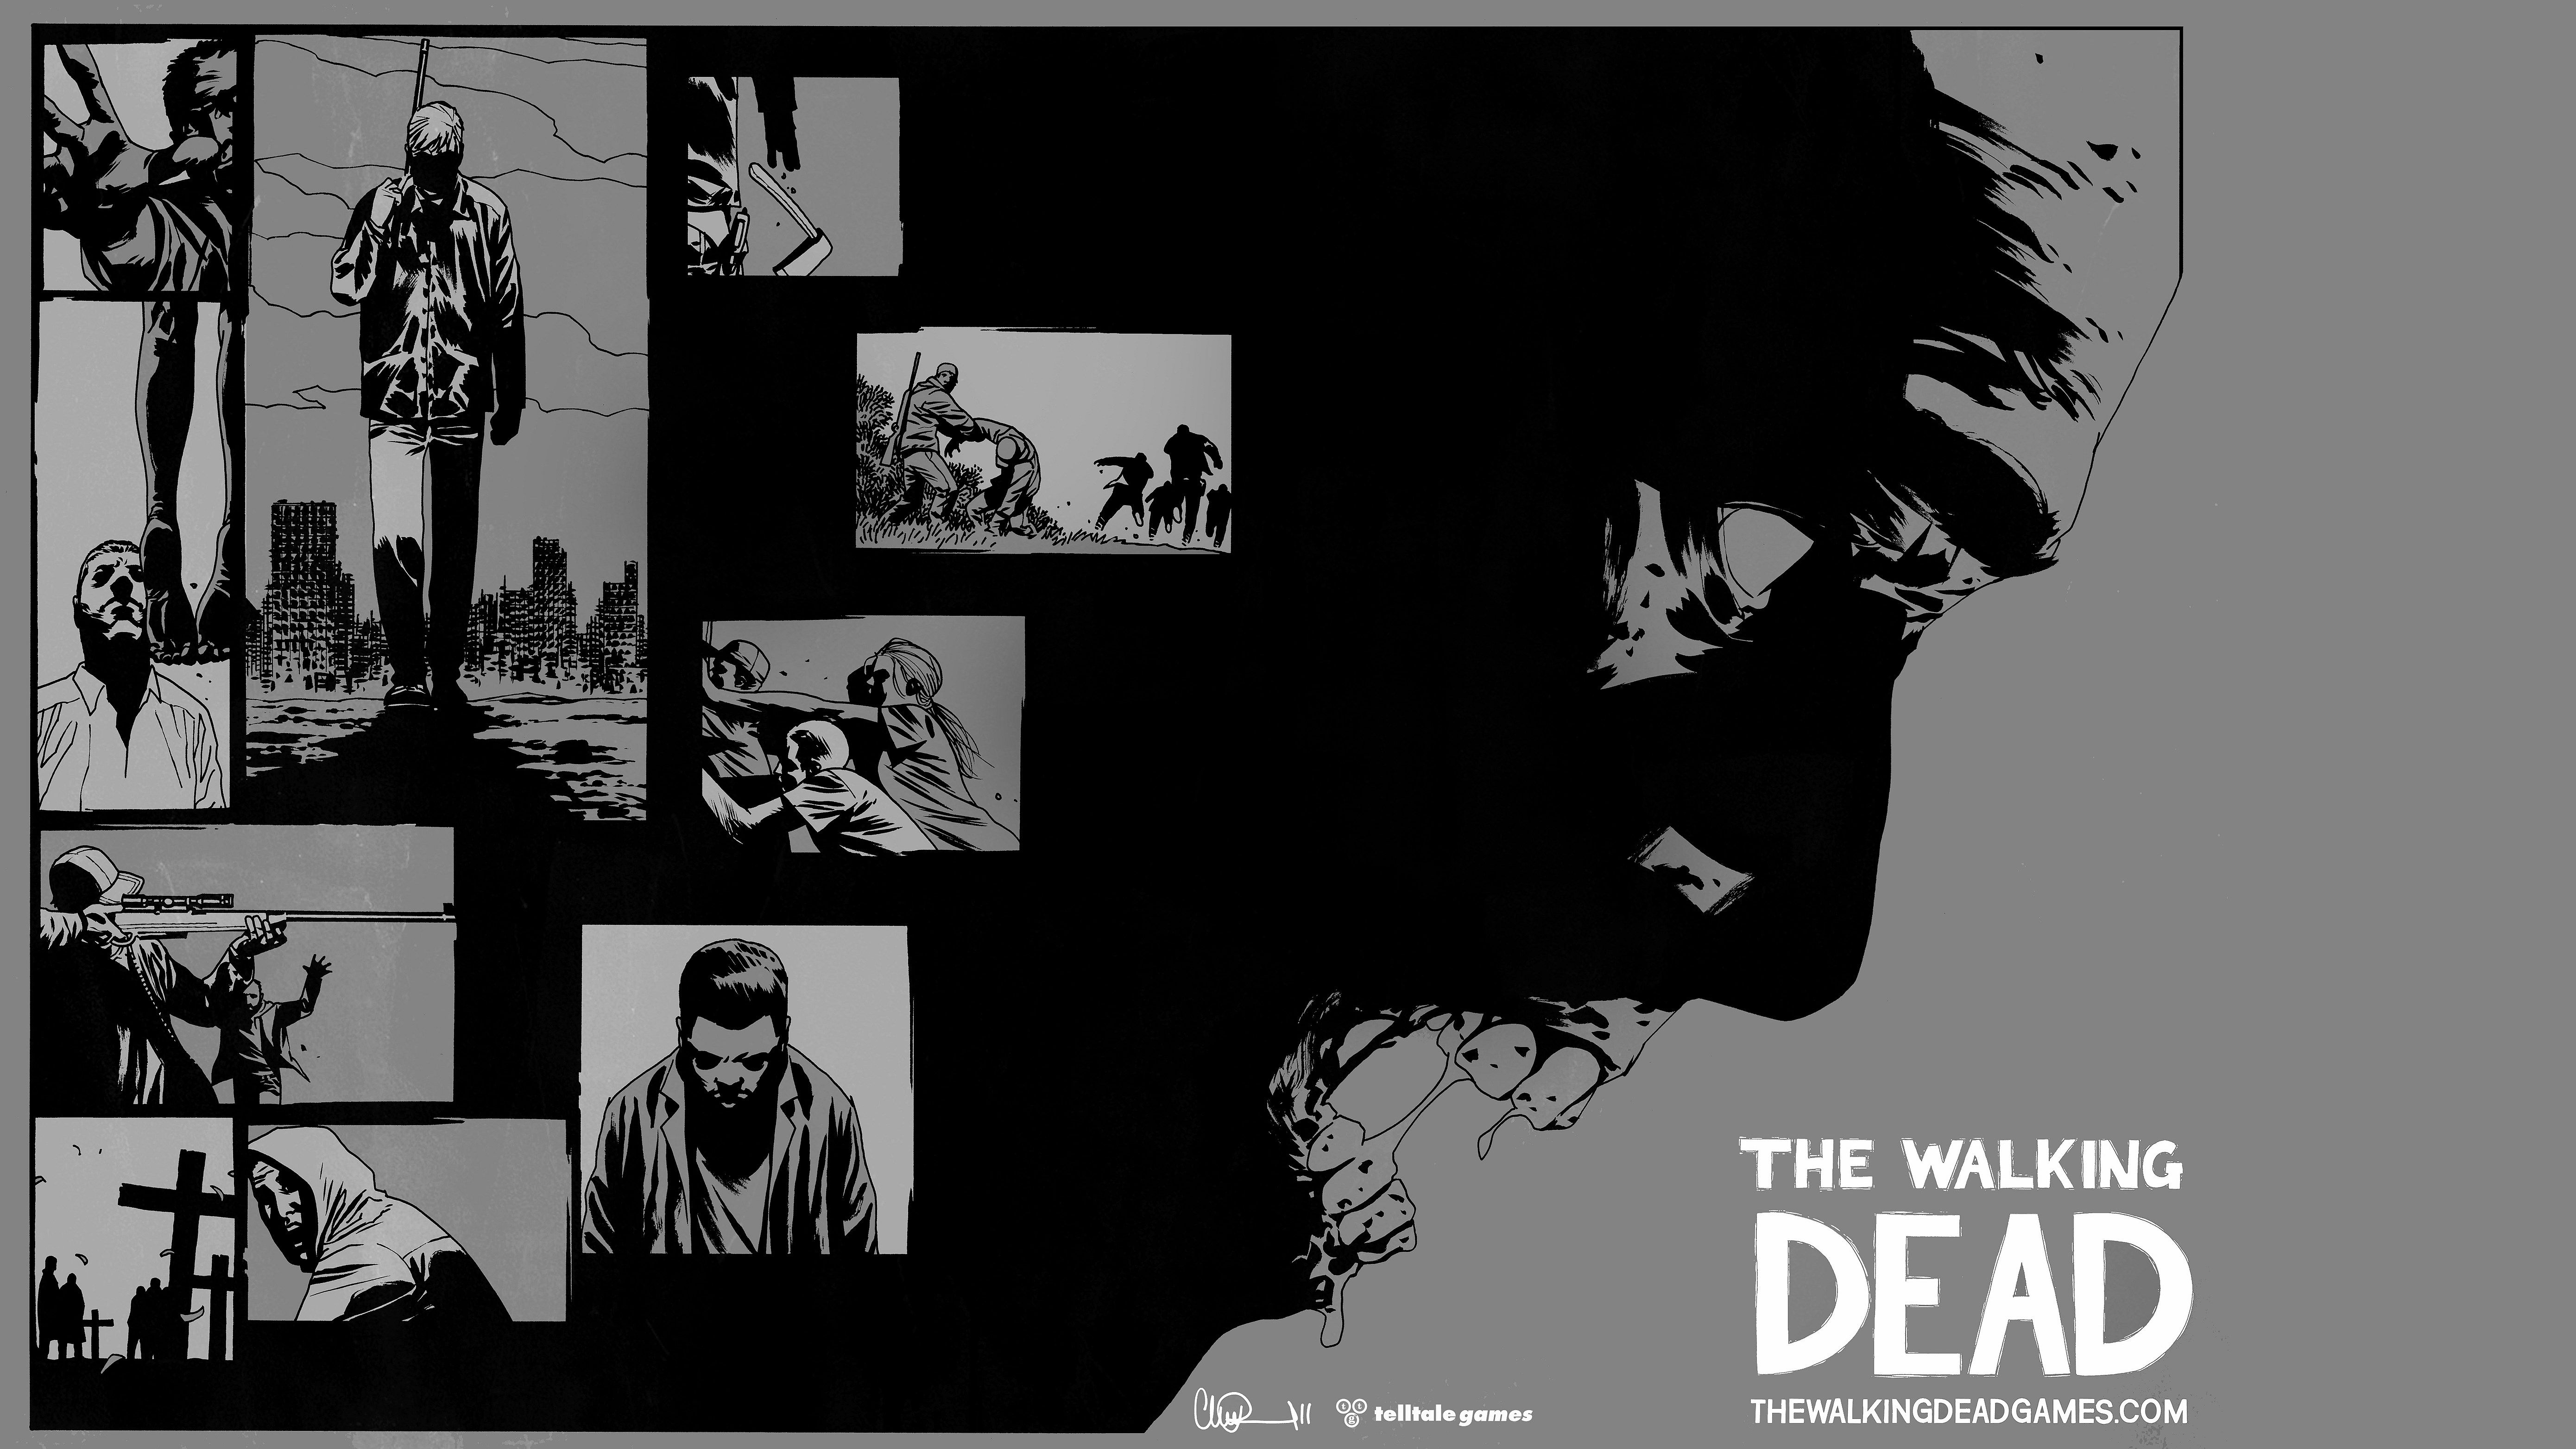 2017 03 04 Wallpaper Images The Walking Dead 1707367 The